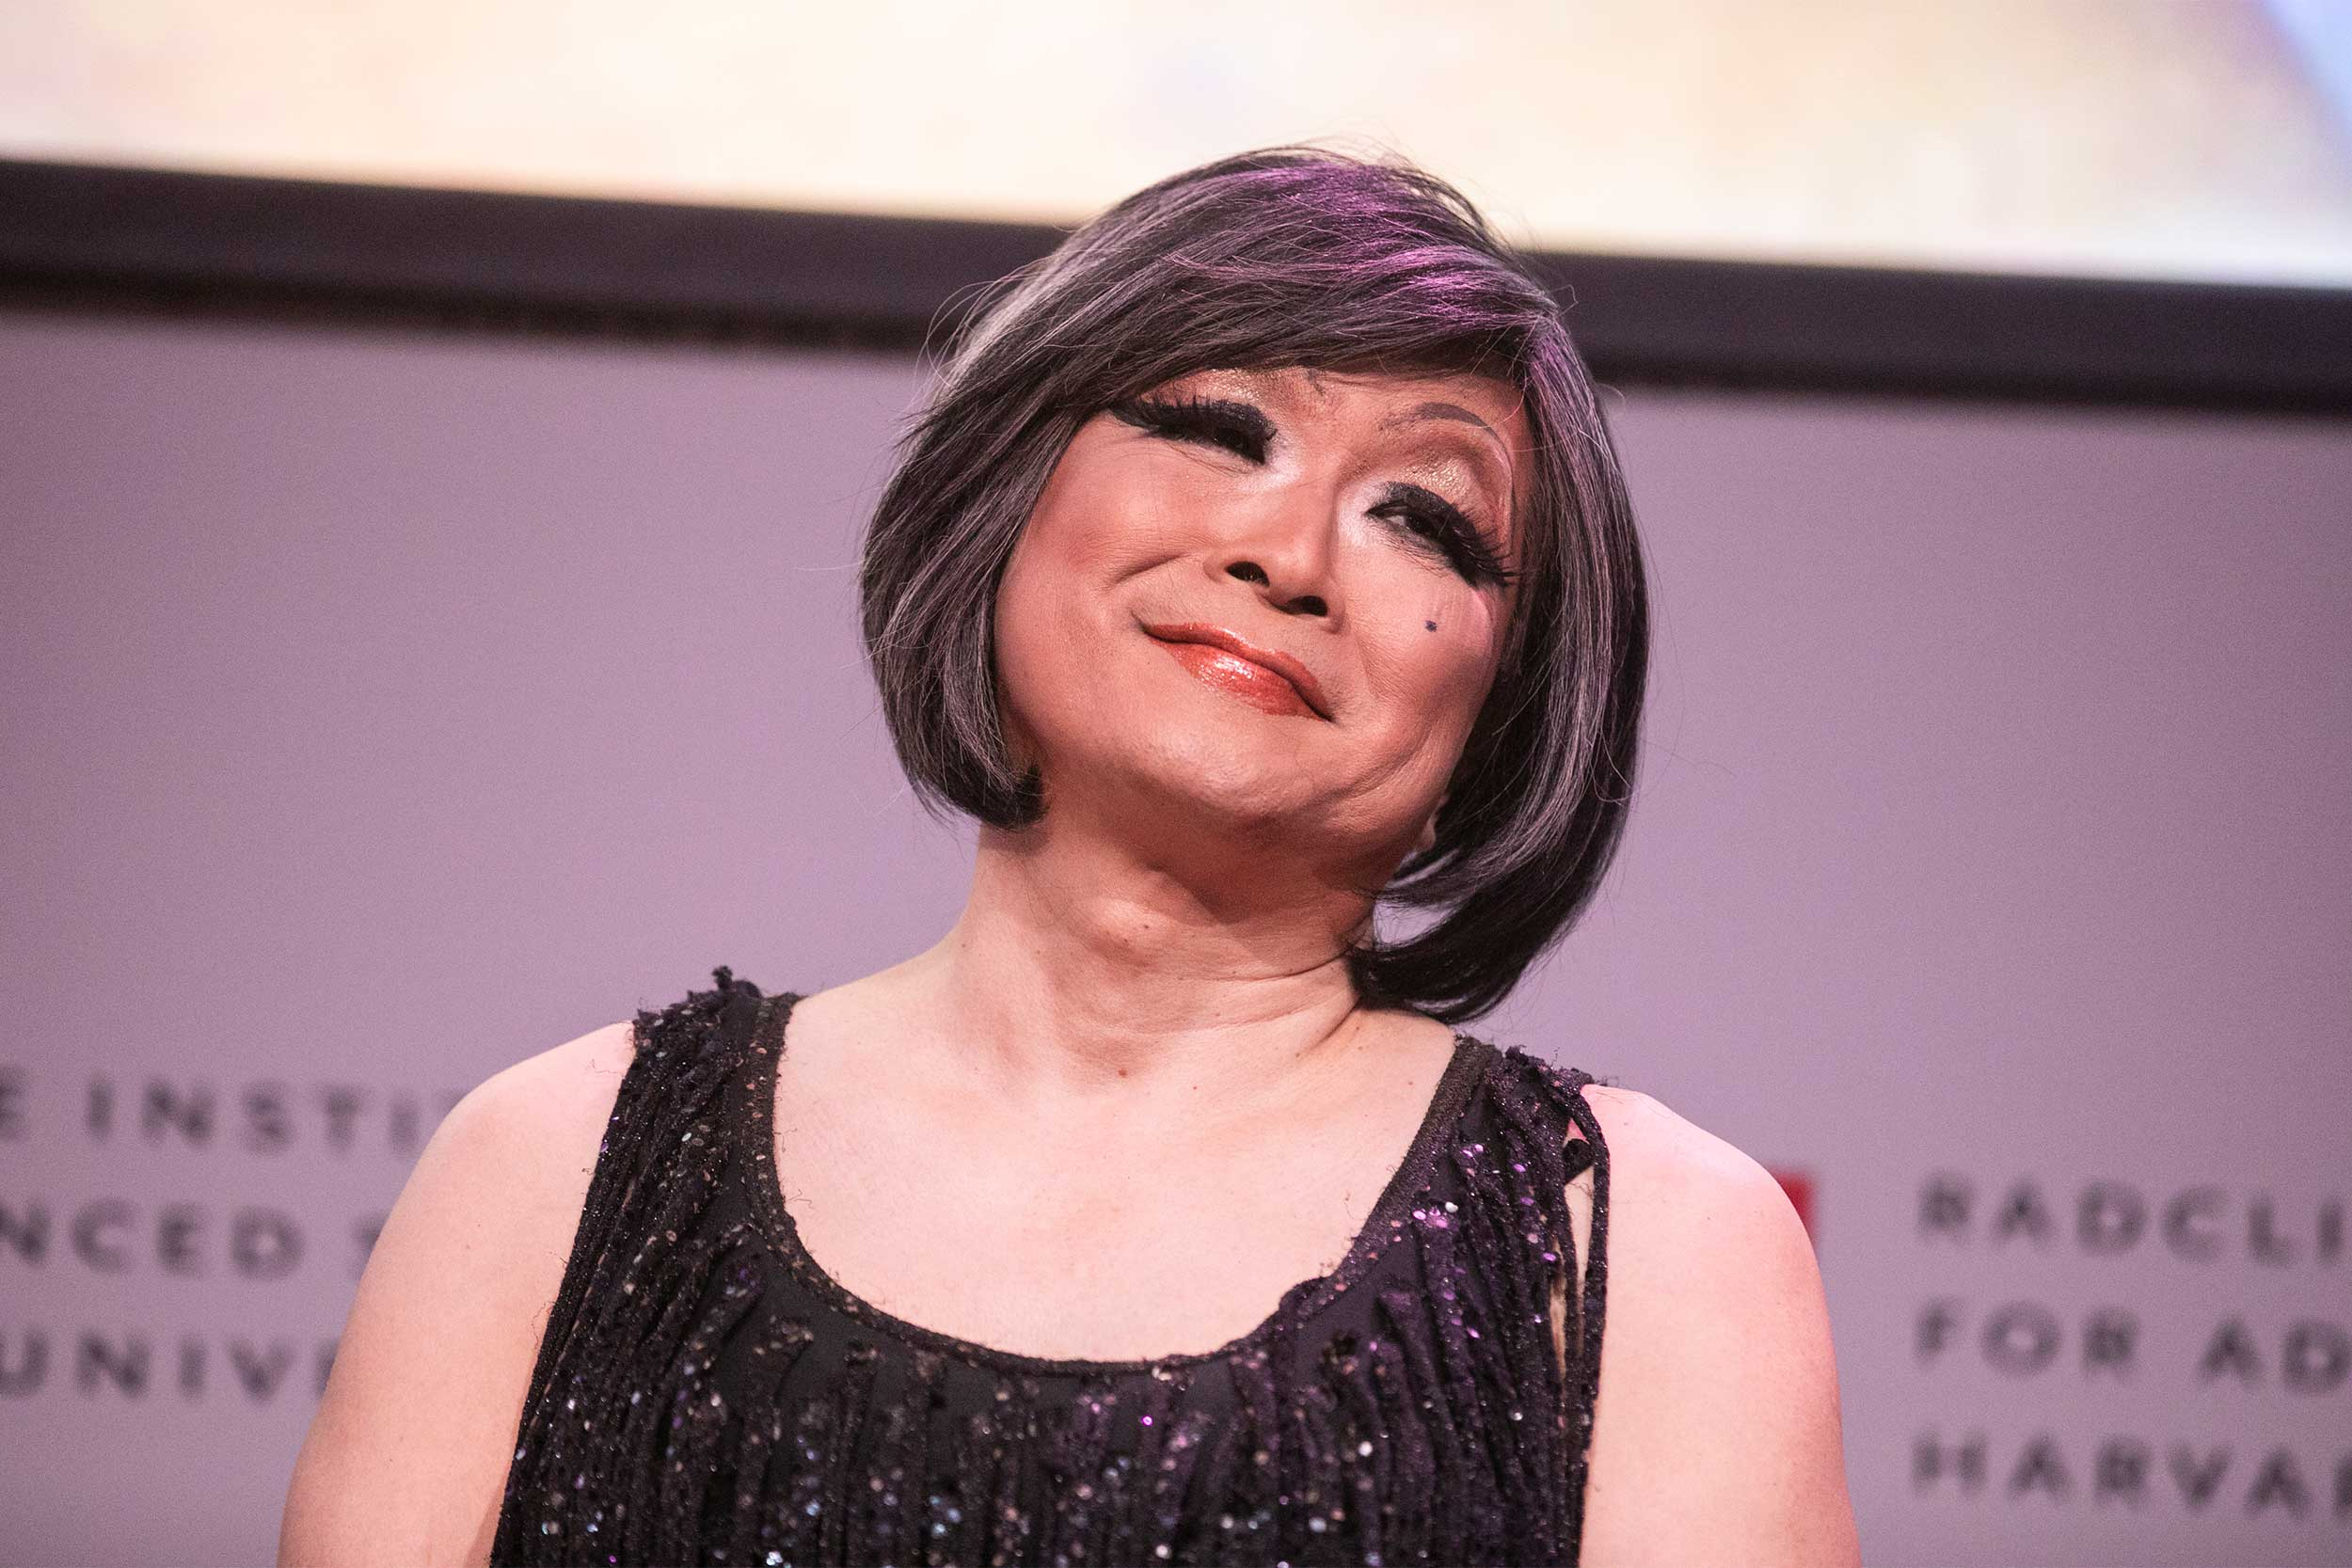 Shigehisa Kuriyama, Faculty Director of the Humanities Program, Radcliffe Institute, takes a bow after being given a gender makeover on stage.